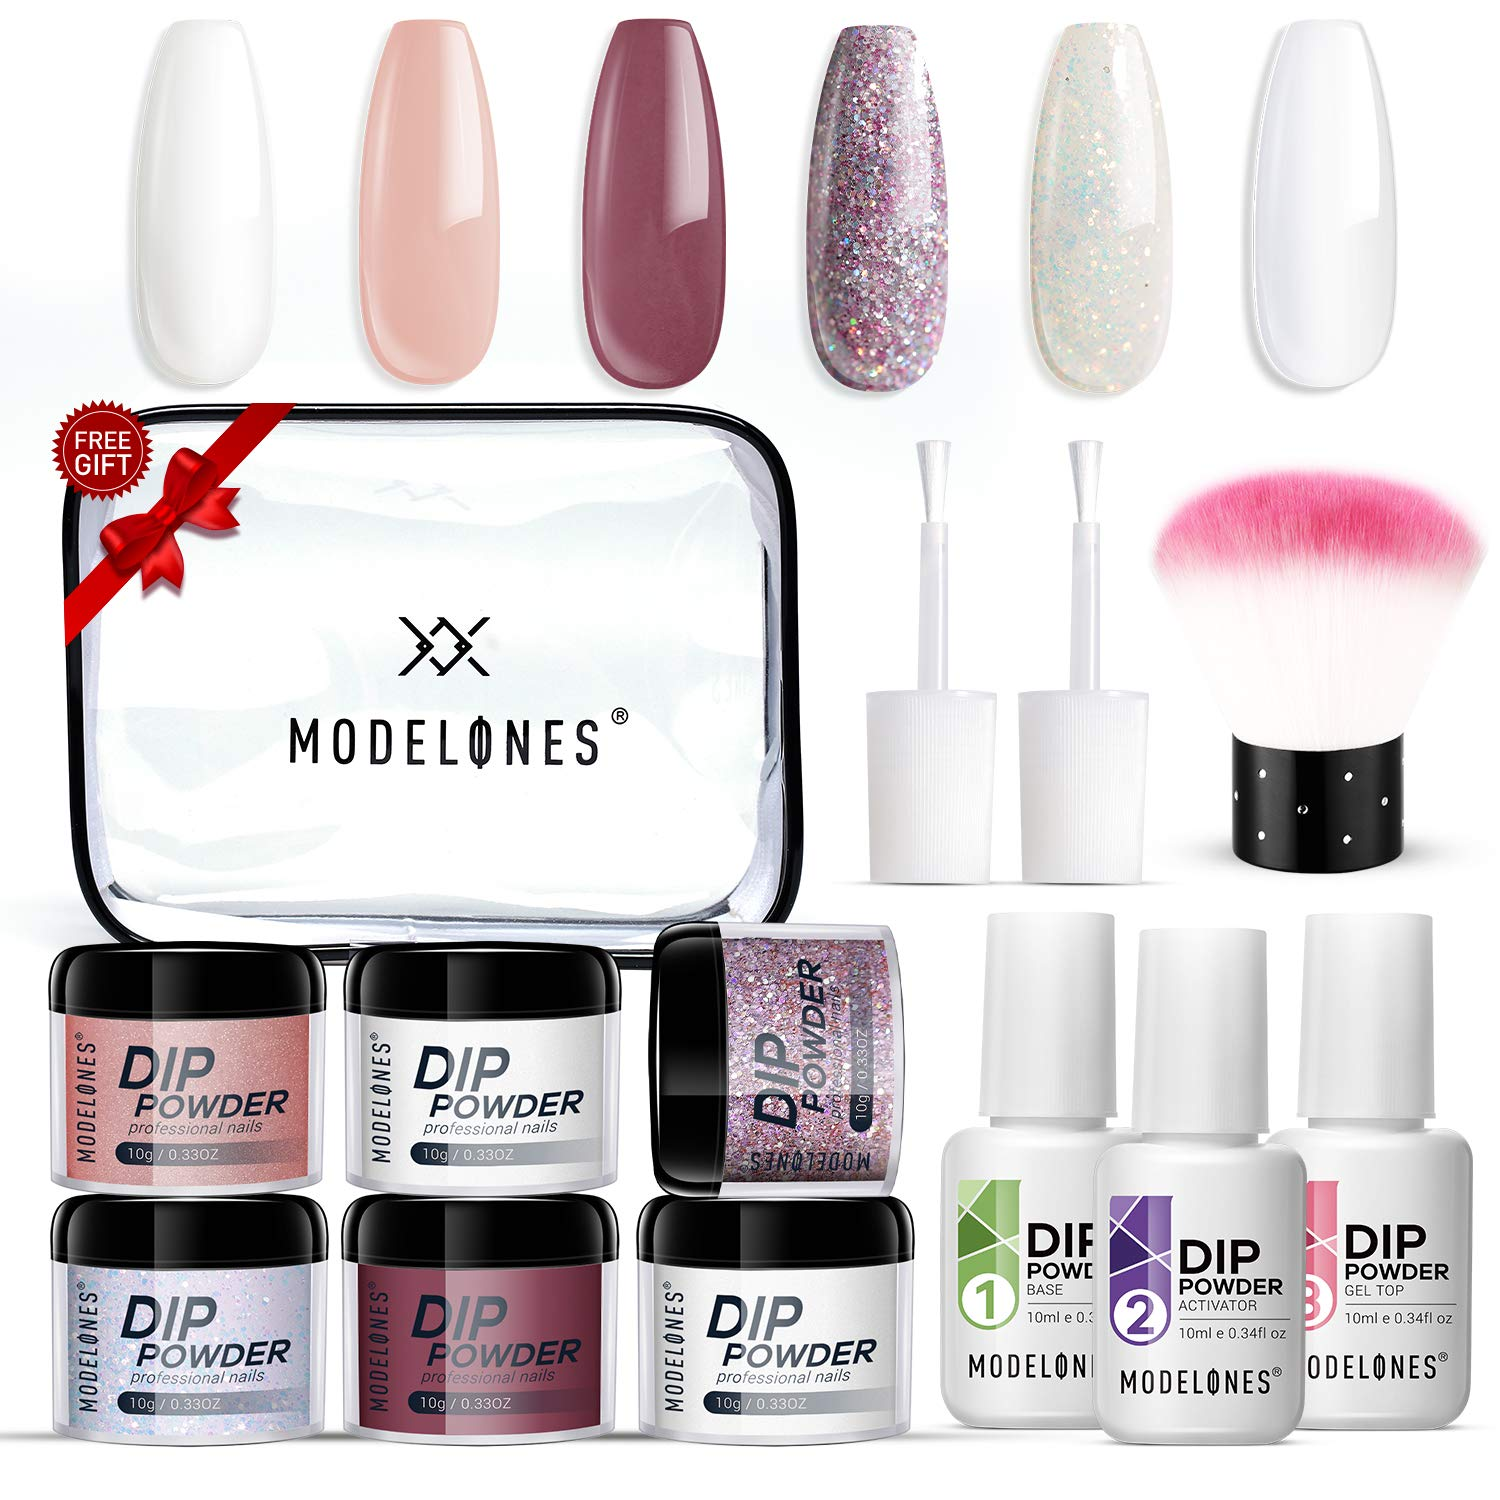 Dipping Powder Nail Kit with 6 Colors White Glitter,Dip Powder System Starter Nail Kit Acrylic Dipping System for French Nail Manicure nail art Set Essential kit,Portable Kit for Travel by modelones